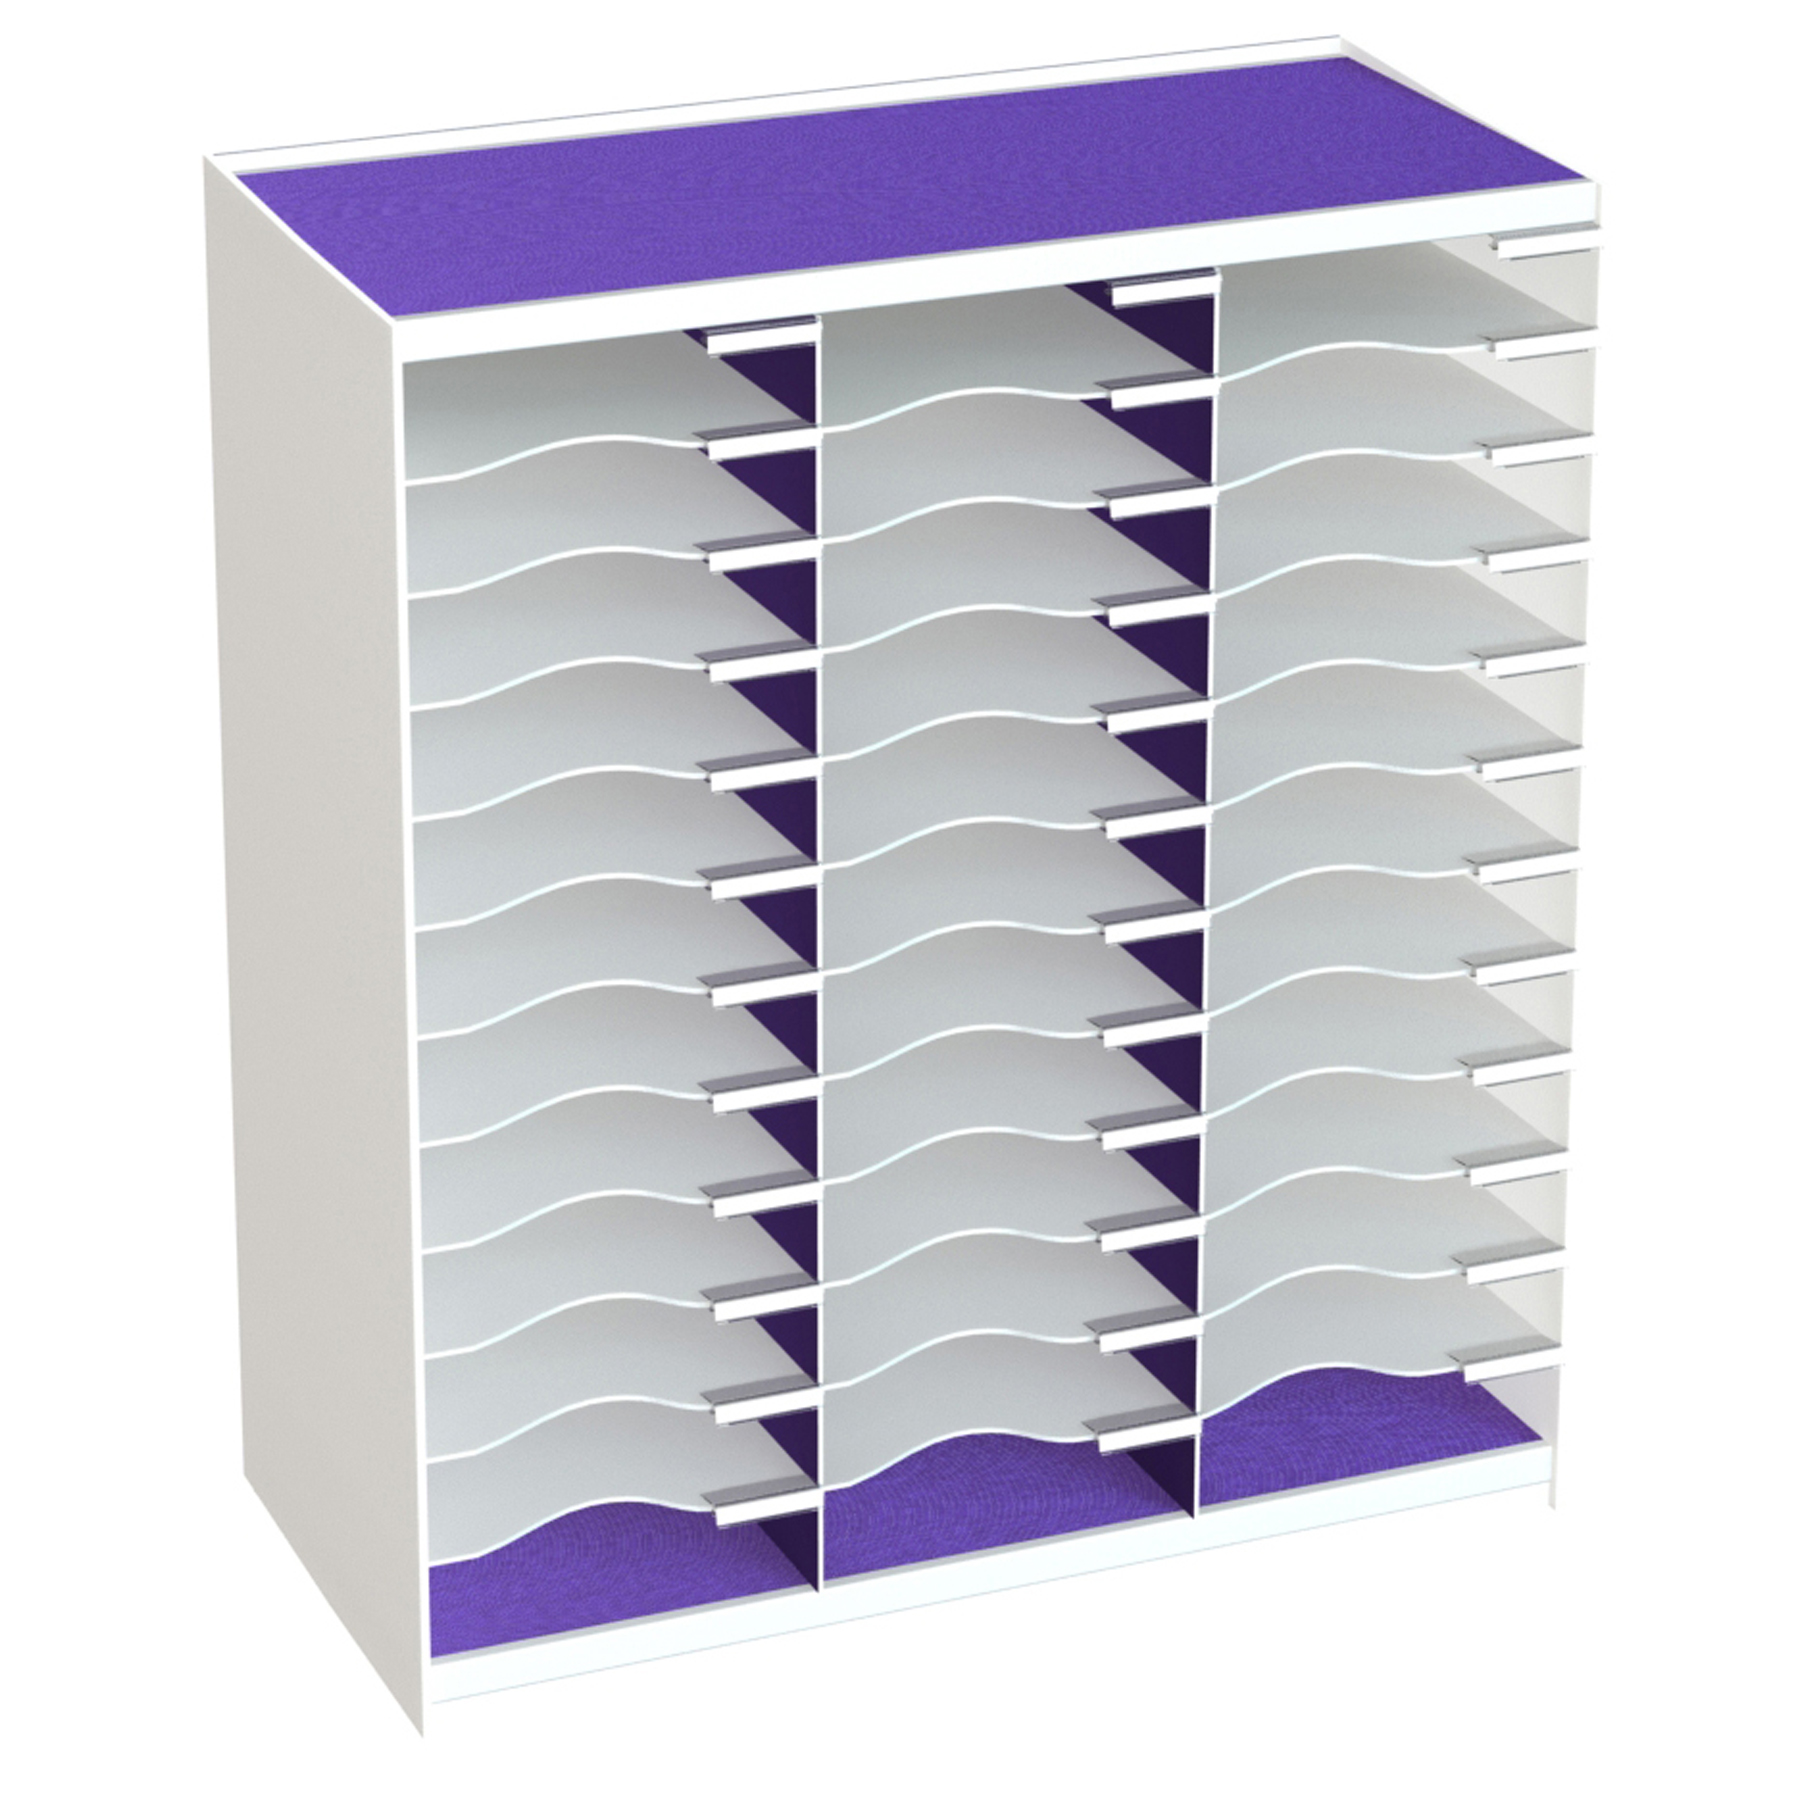 Paperflow Master Literature Organizer, 36 Compartment, White Purple (803.13.19) by Paperflow